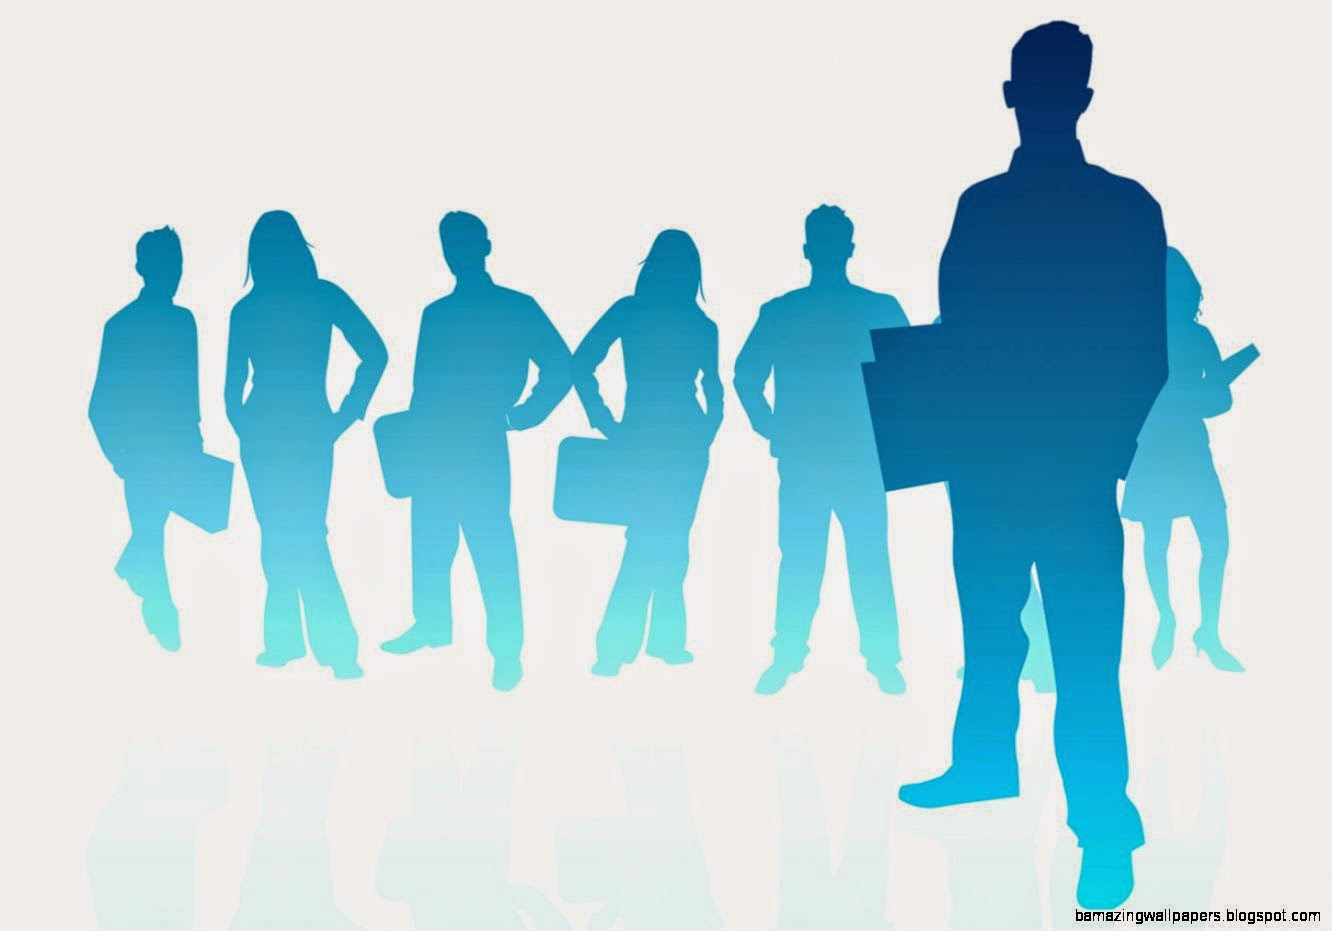 HR chiefs who propel organizational performance   SuccessfulWorkplace